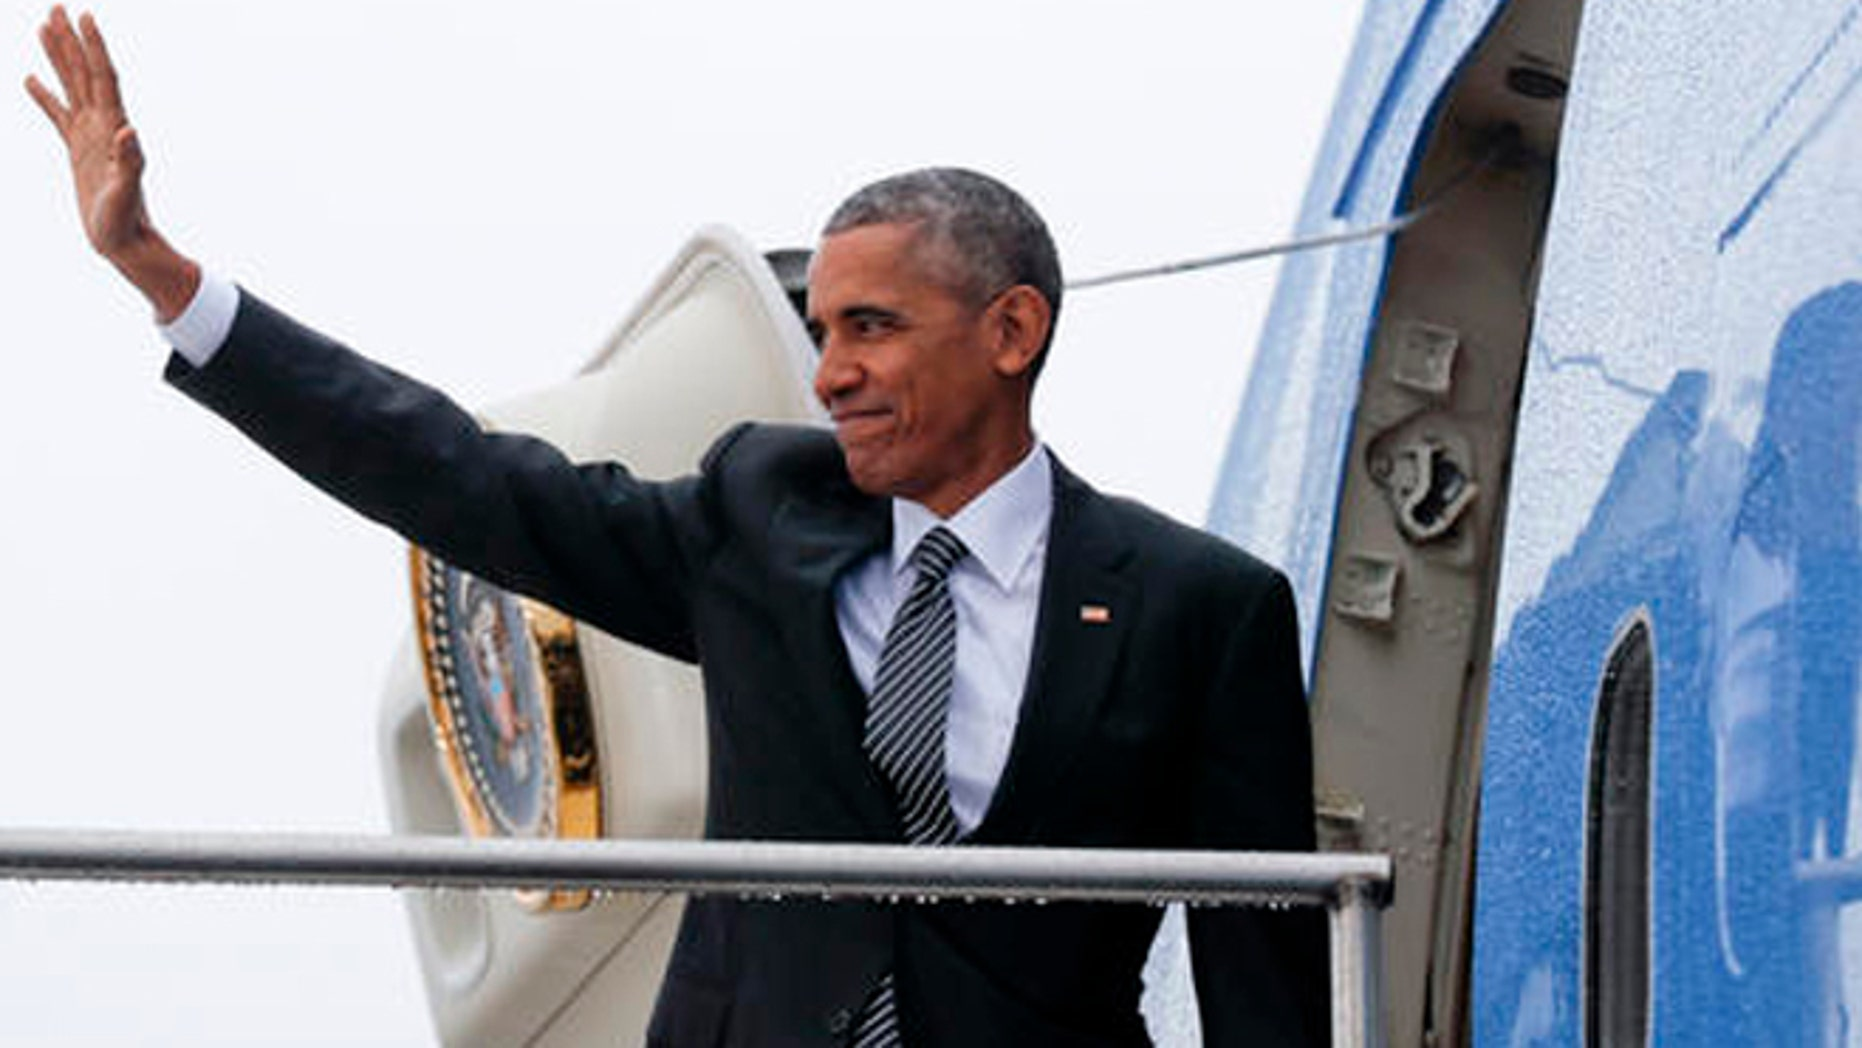 US President Barack Obama waves as he boards Air Force One during his departure from Tegel International Airport in Berlin, Friday, Nov. 18, 2016. Obama is leaving Europe and heading to South America to attend the annual Asia Pacific Economic Cooperation (APEC) forum, taking place in Lima, Peru. (AP Photo/Pablo Martinez Monsivais)